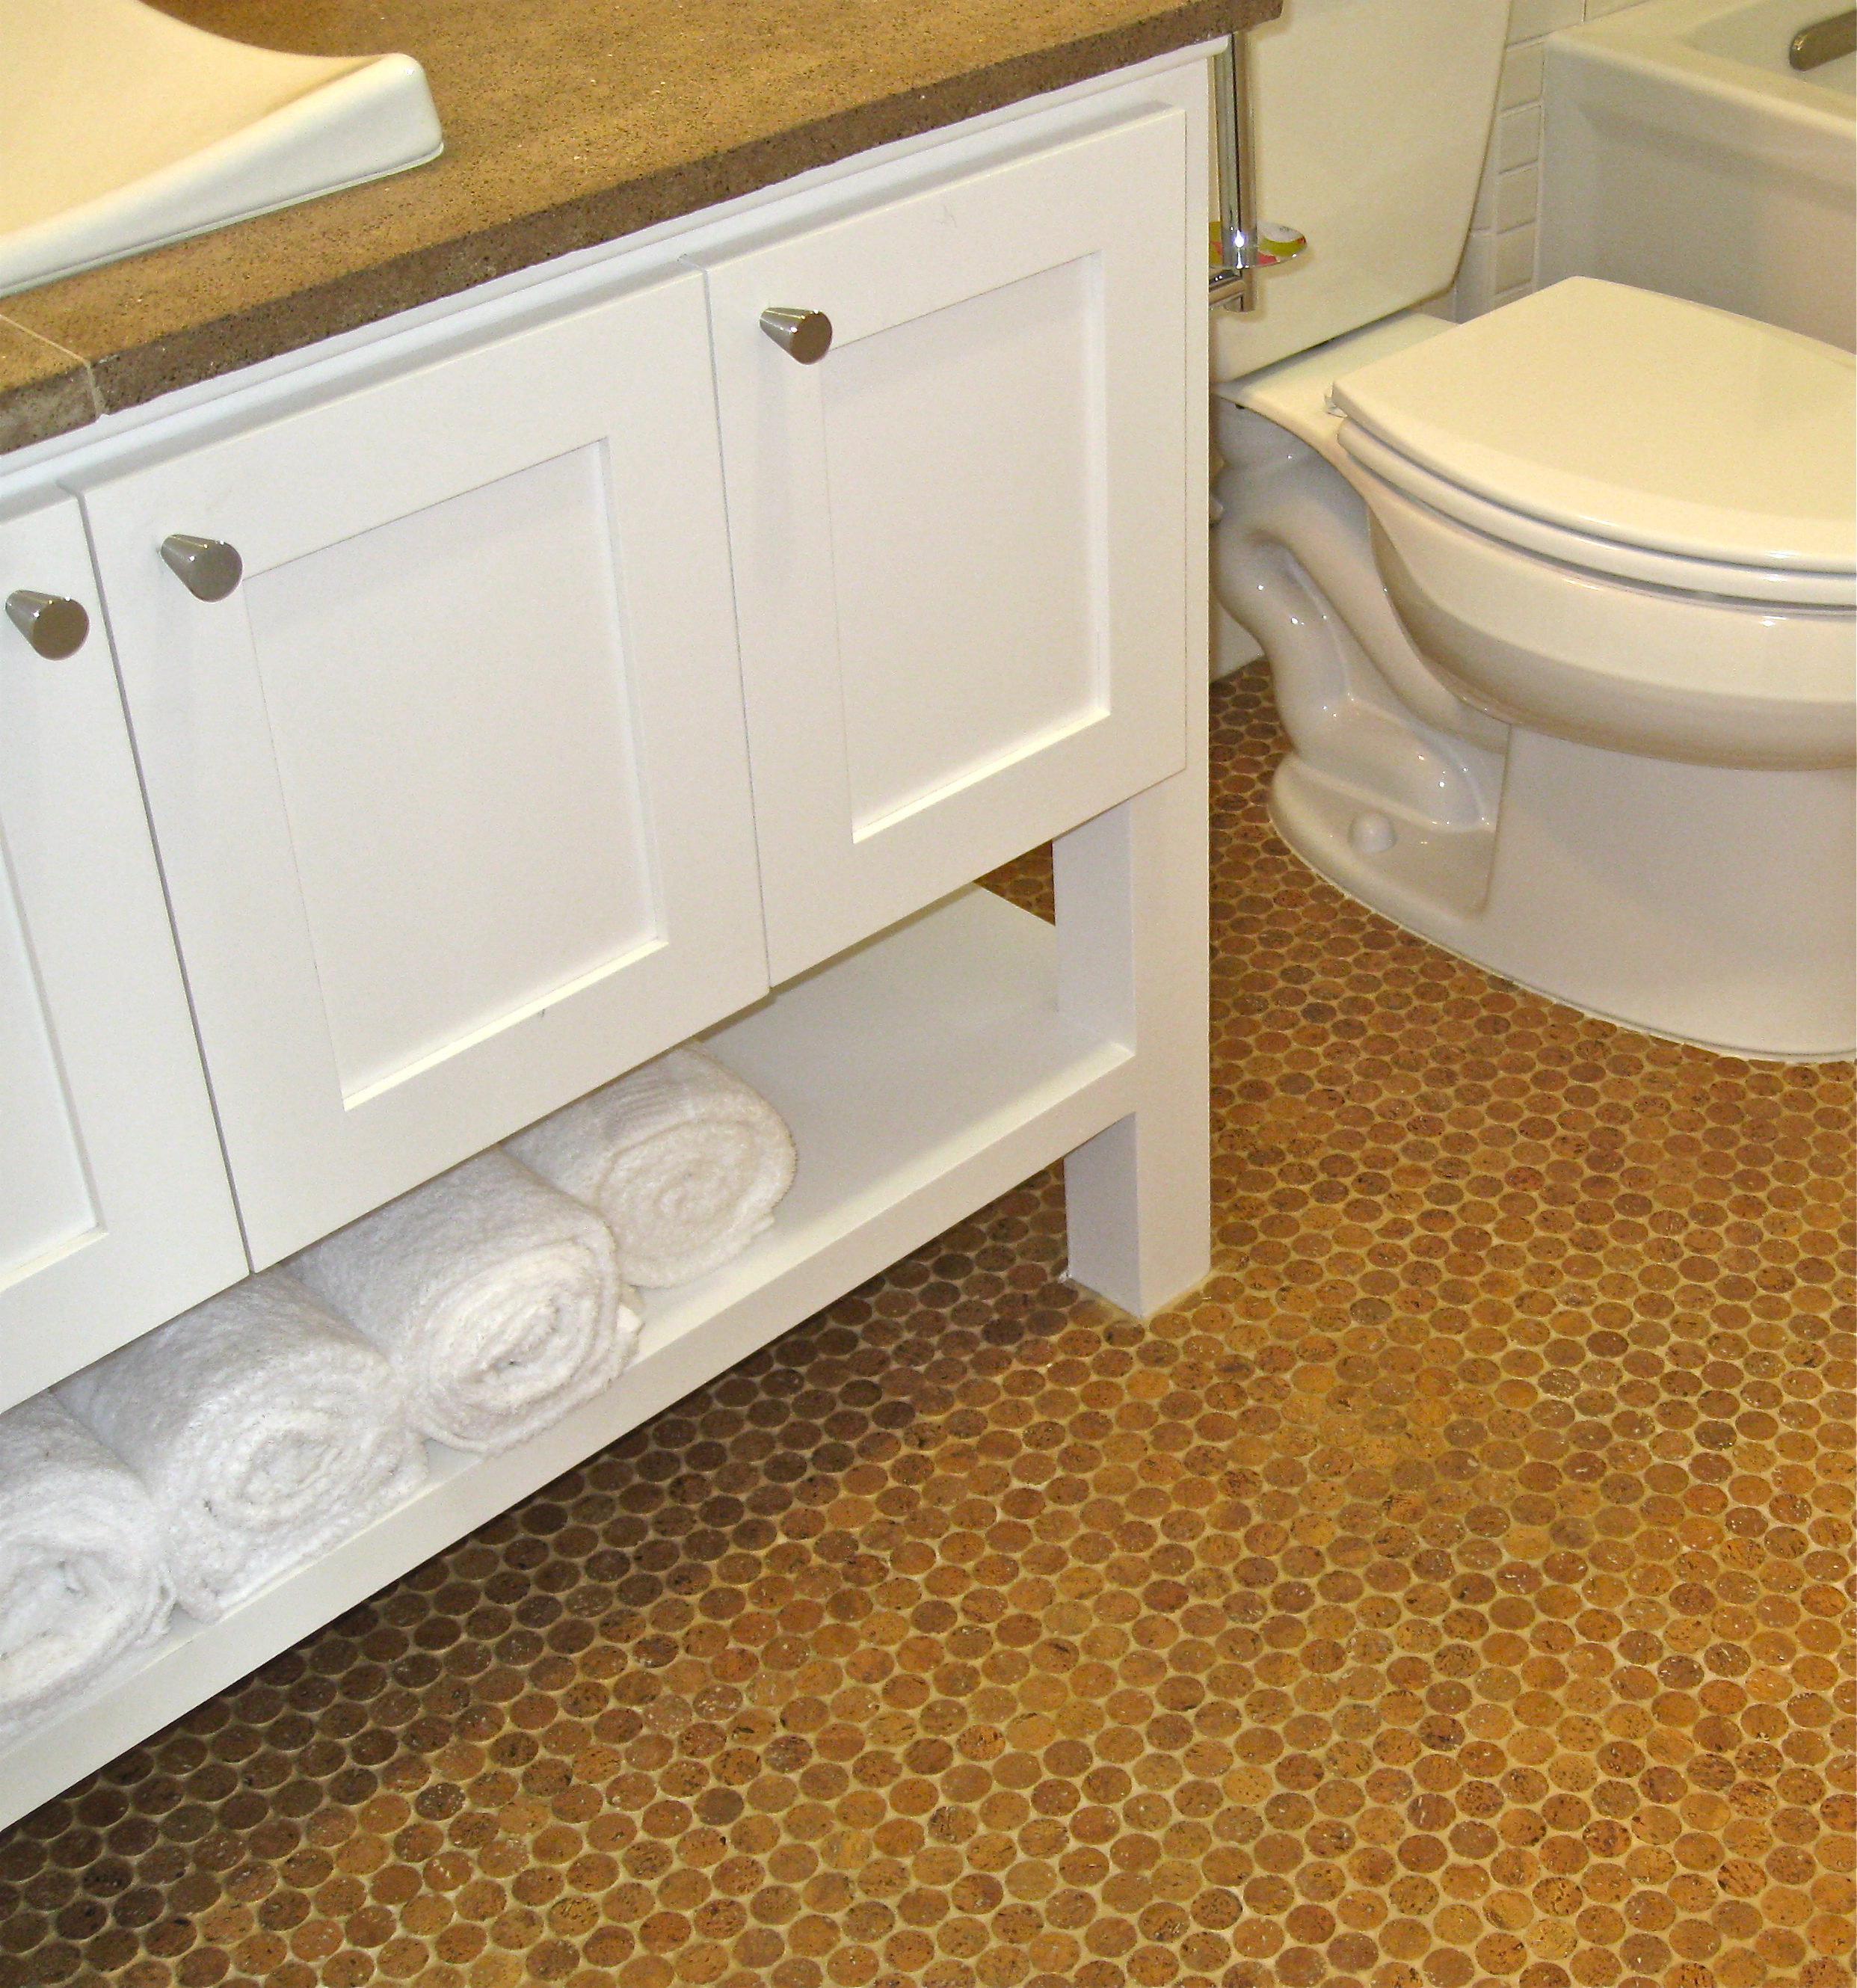 30 available ideas and pictures of cork bathroom flooring for Ideas for bathroom flooring